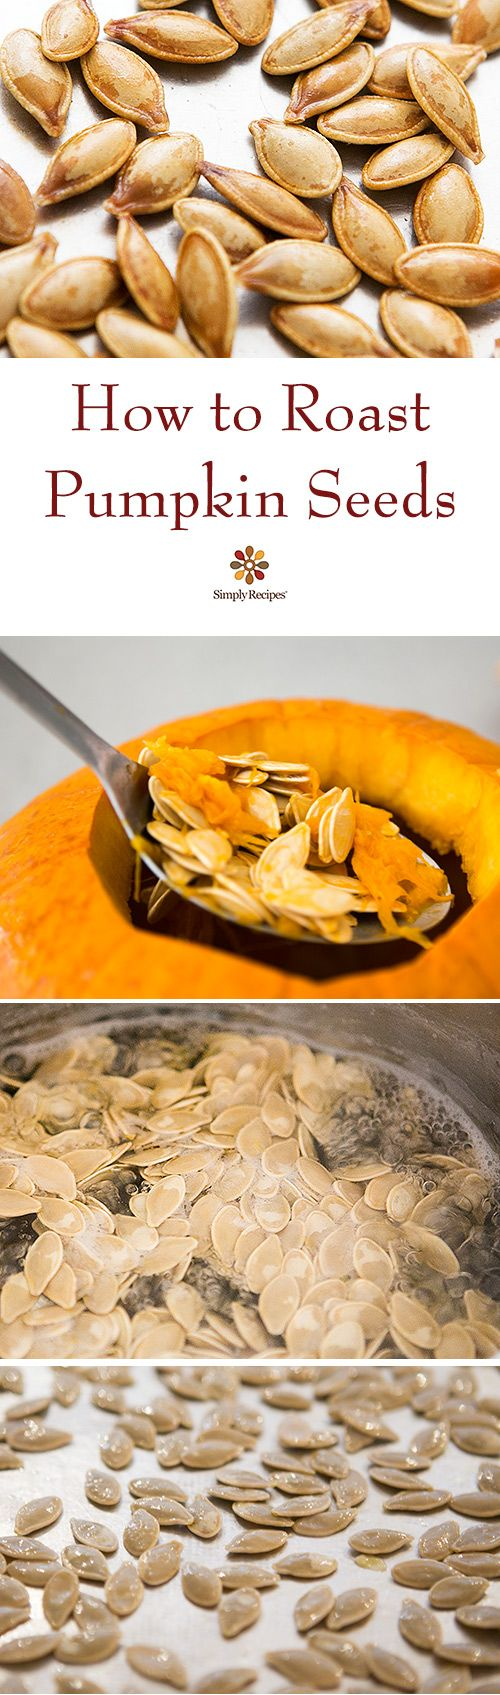 salt penetrates all the way to the inside seed. Roasted pumpkin seeds ...